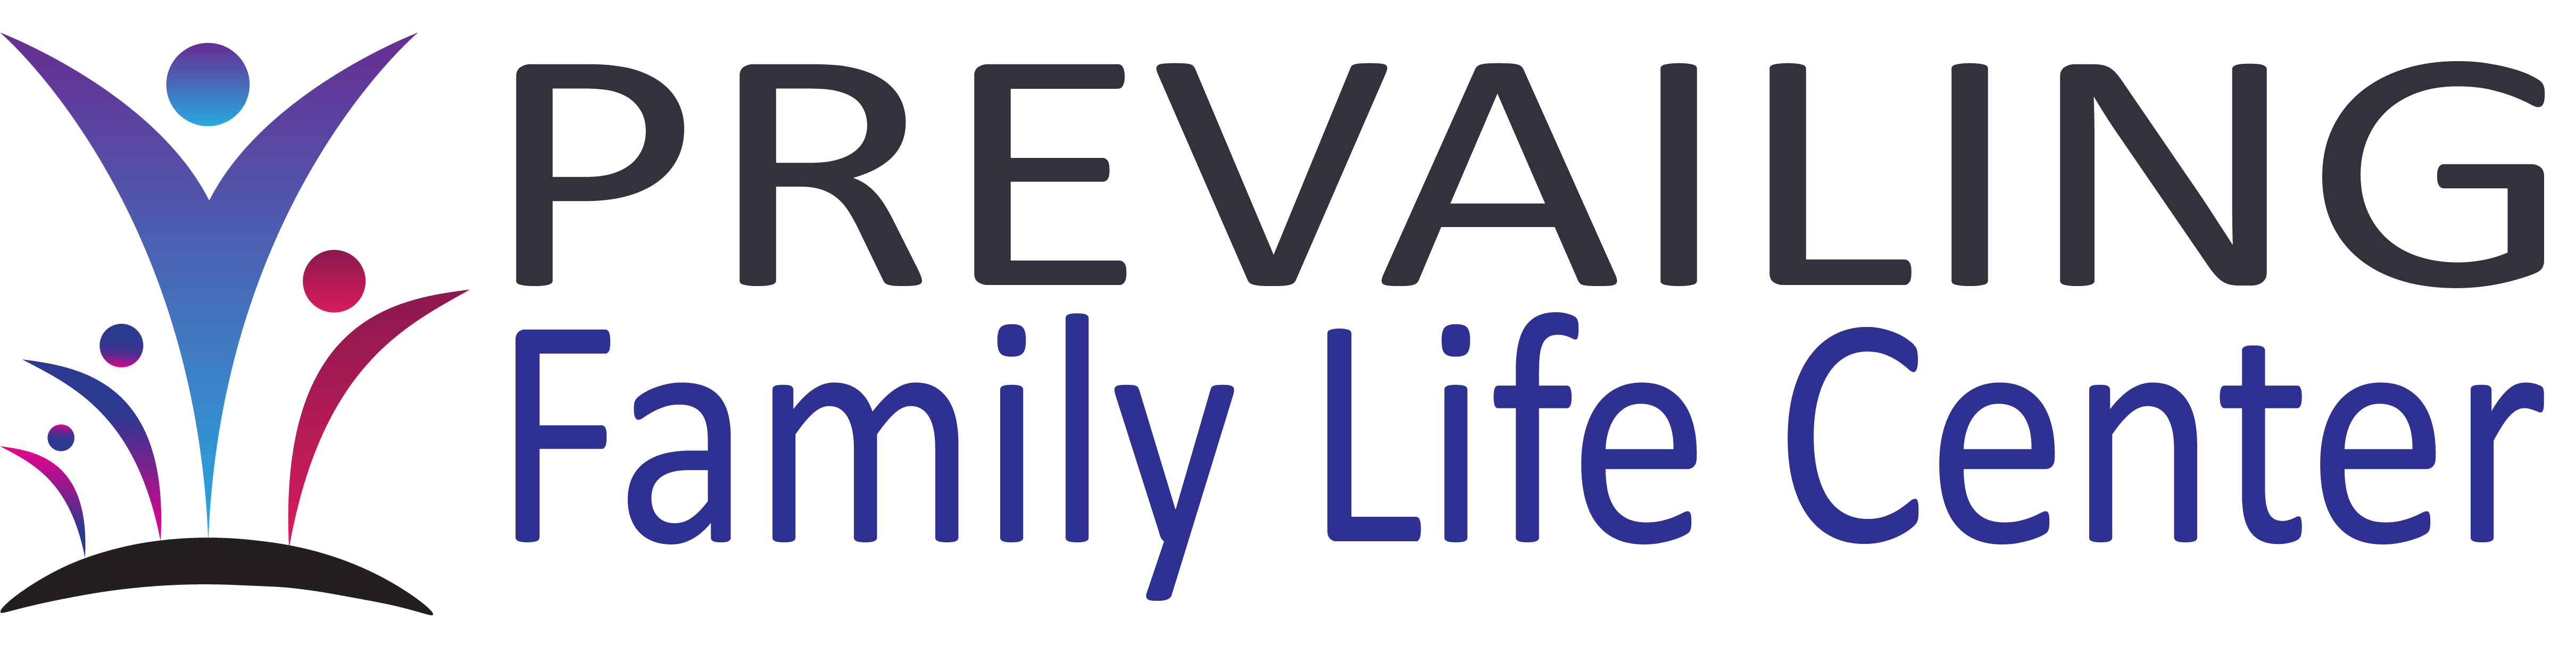 Prevailing Family Life Center